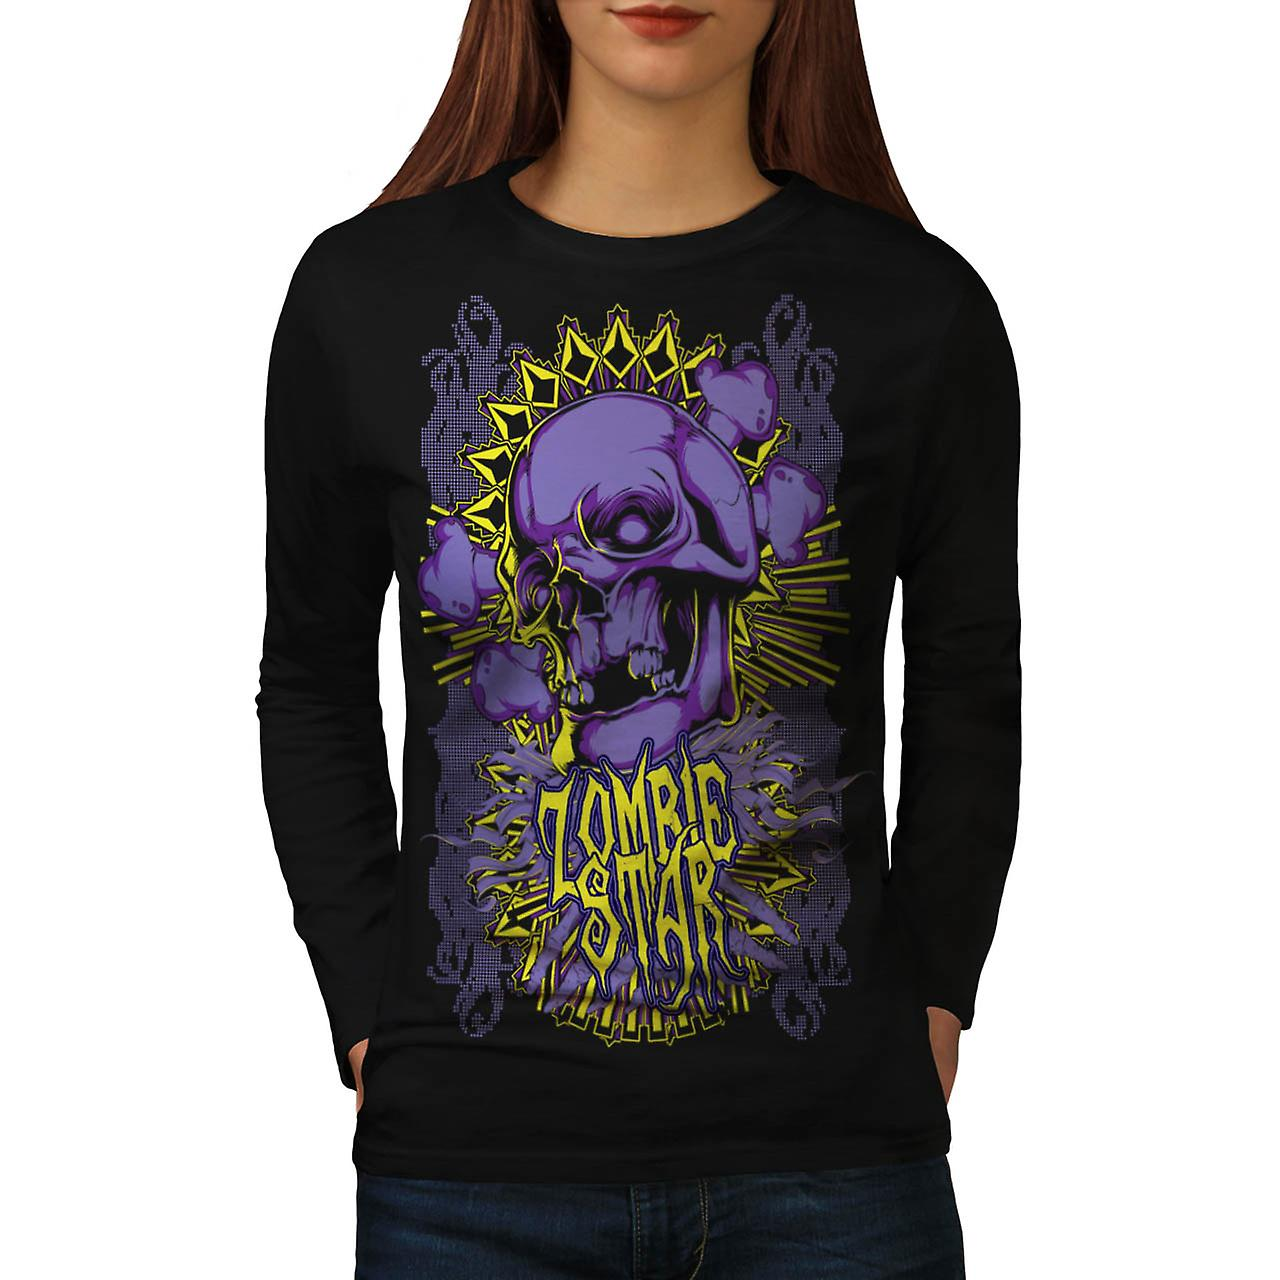 Monster Zombie Star Devils Zone Women Black Long Sleeve T-shirt | Wellcoda